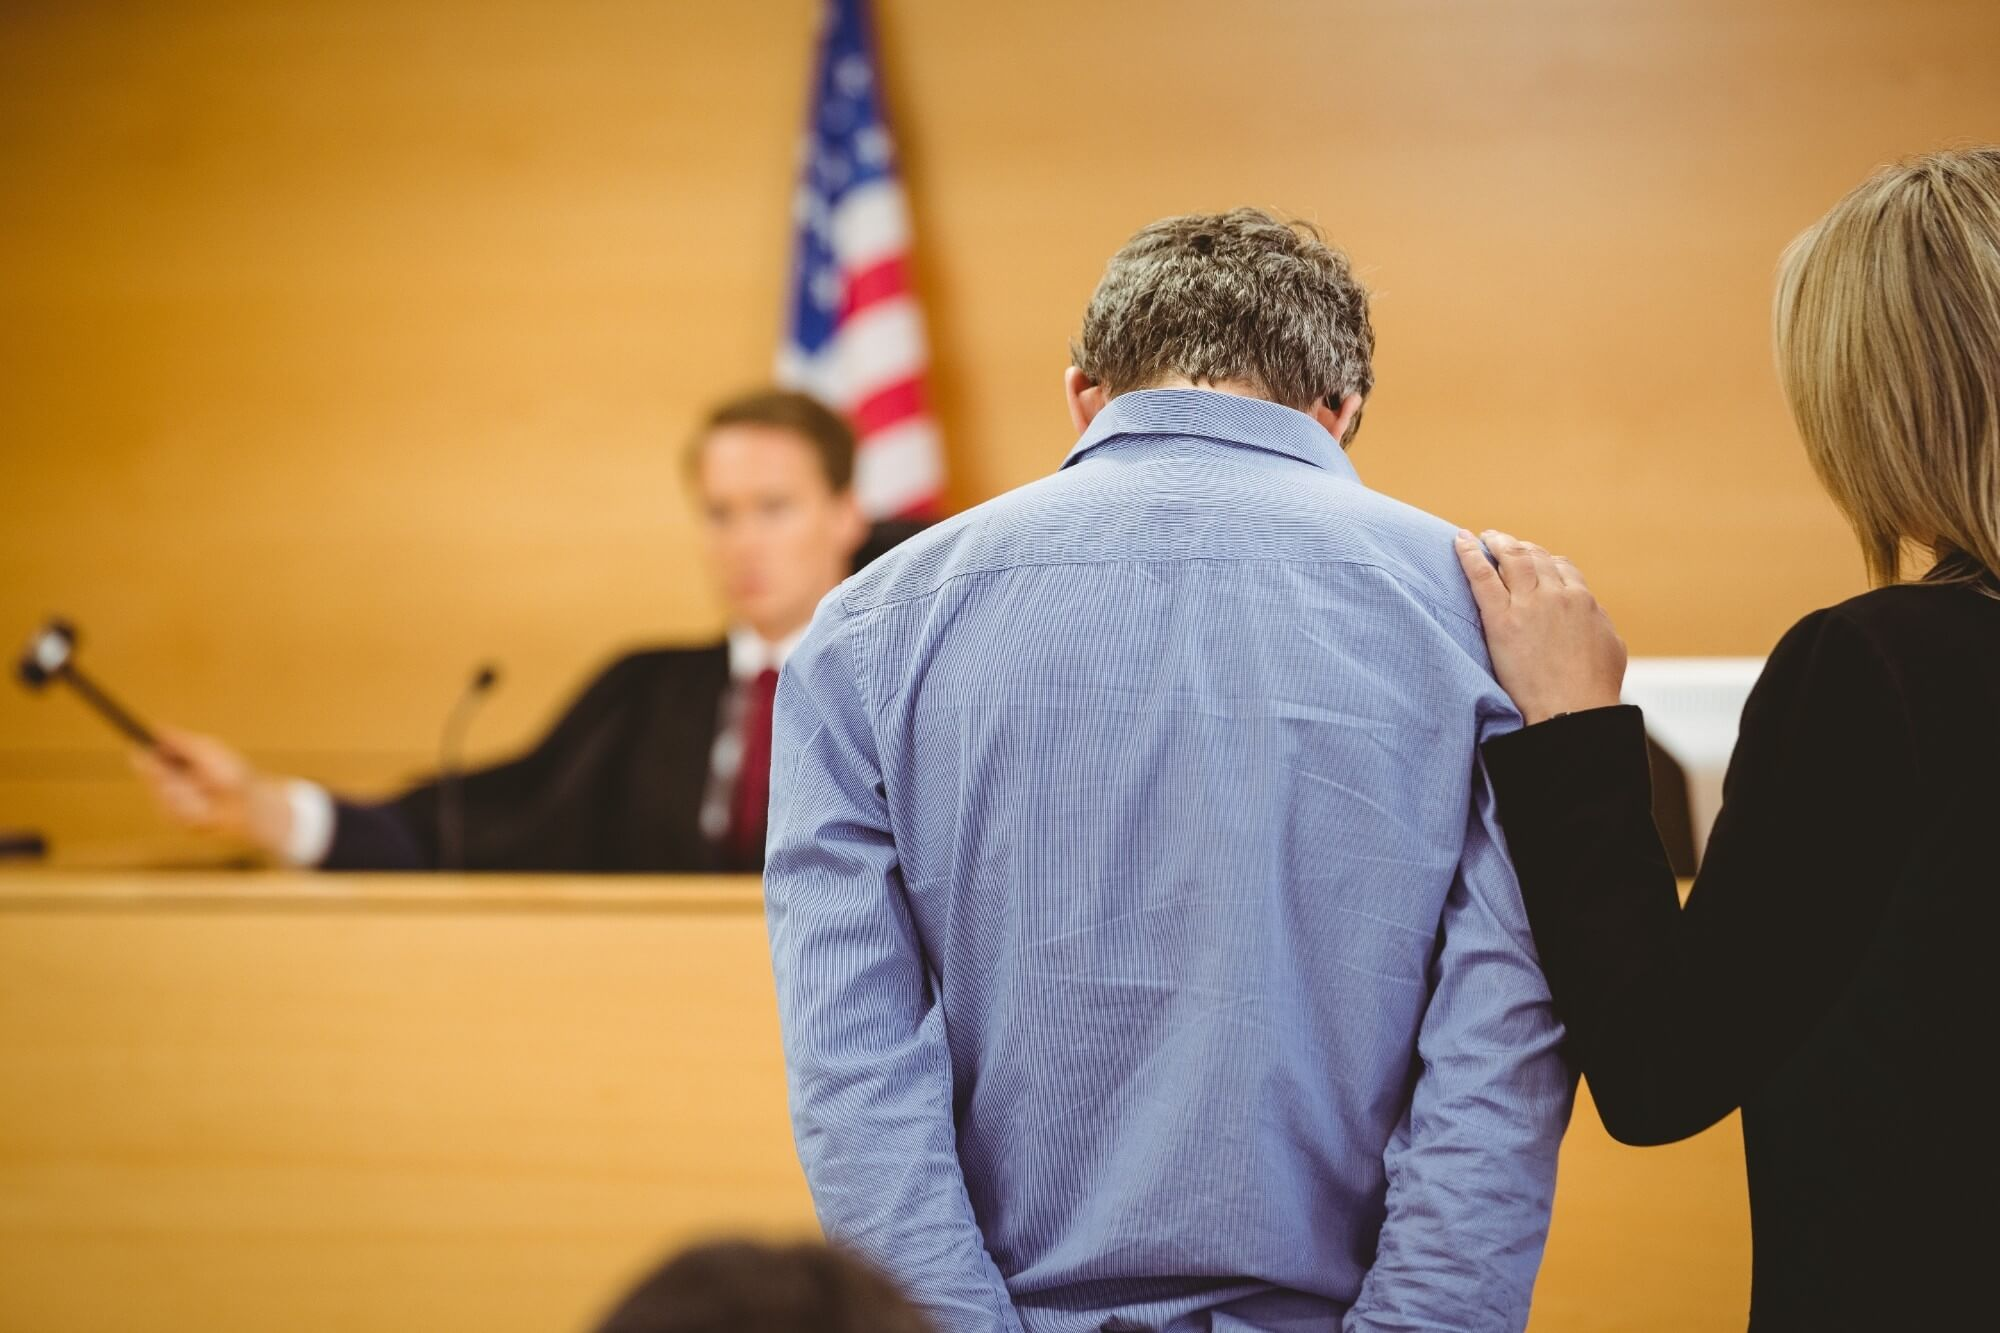 Choosing the right criminal lawyer